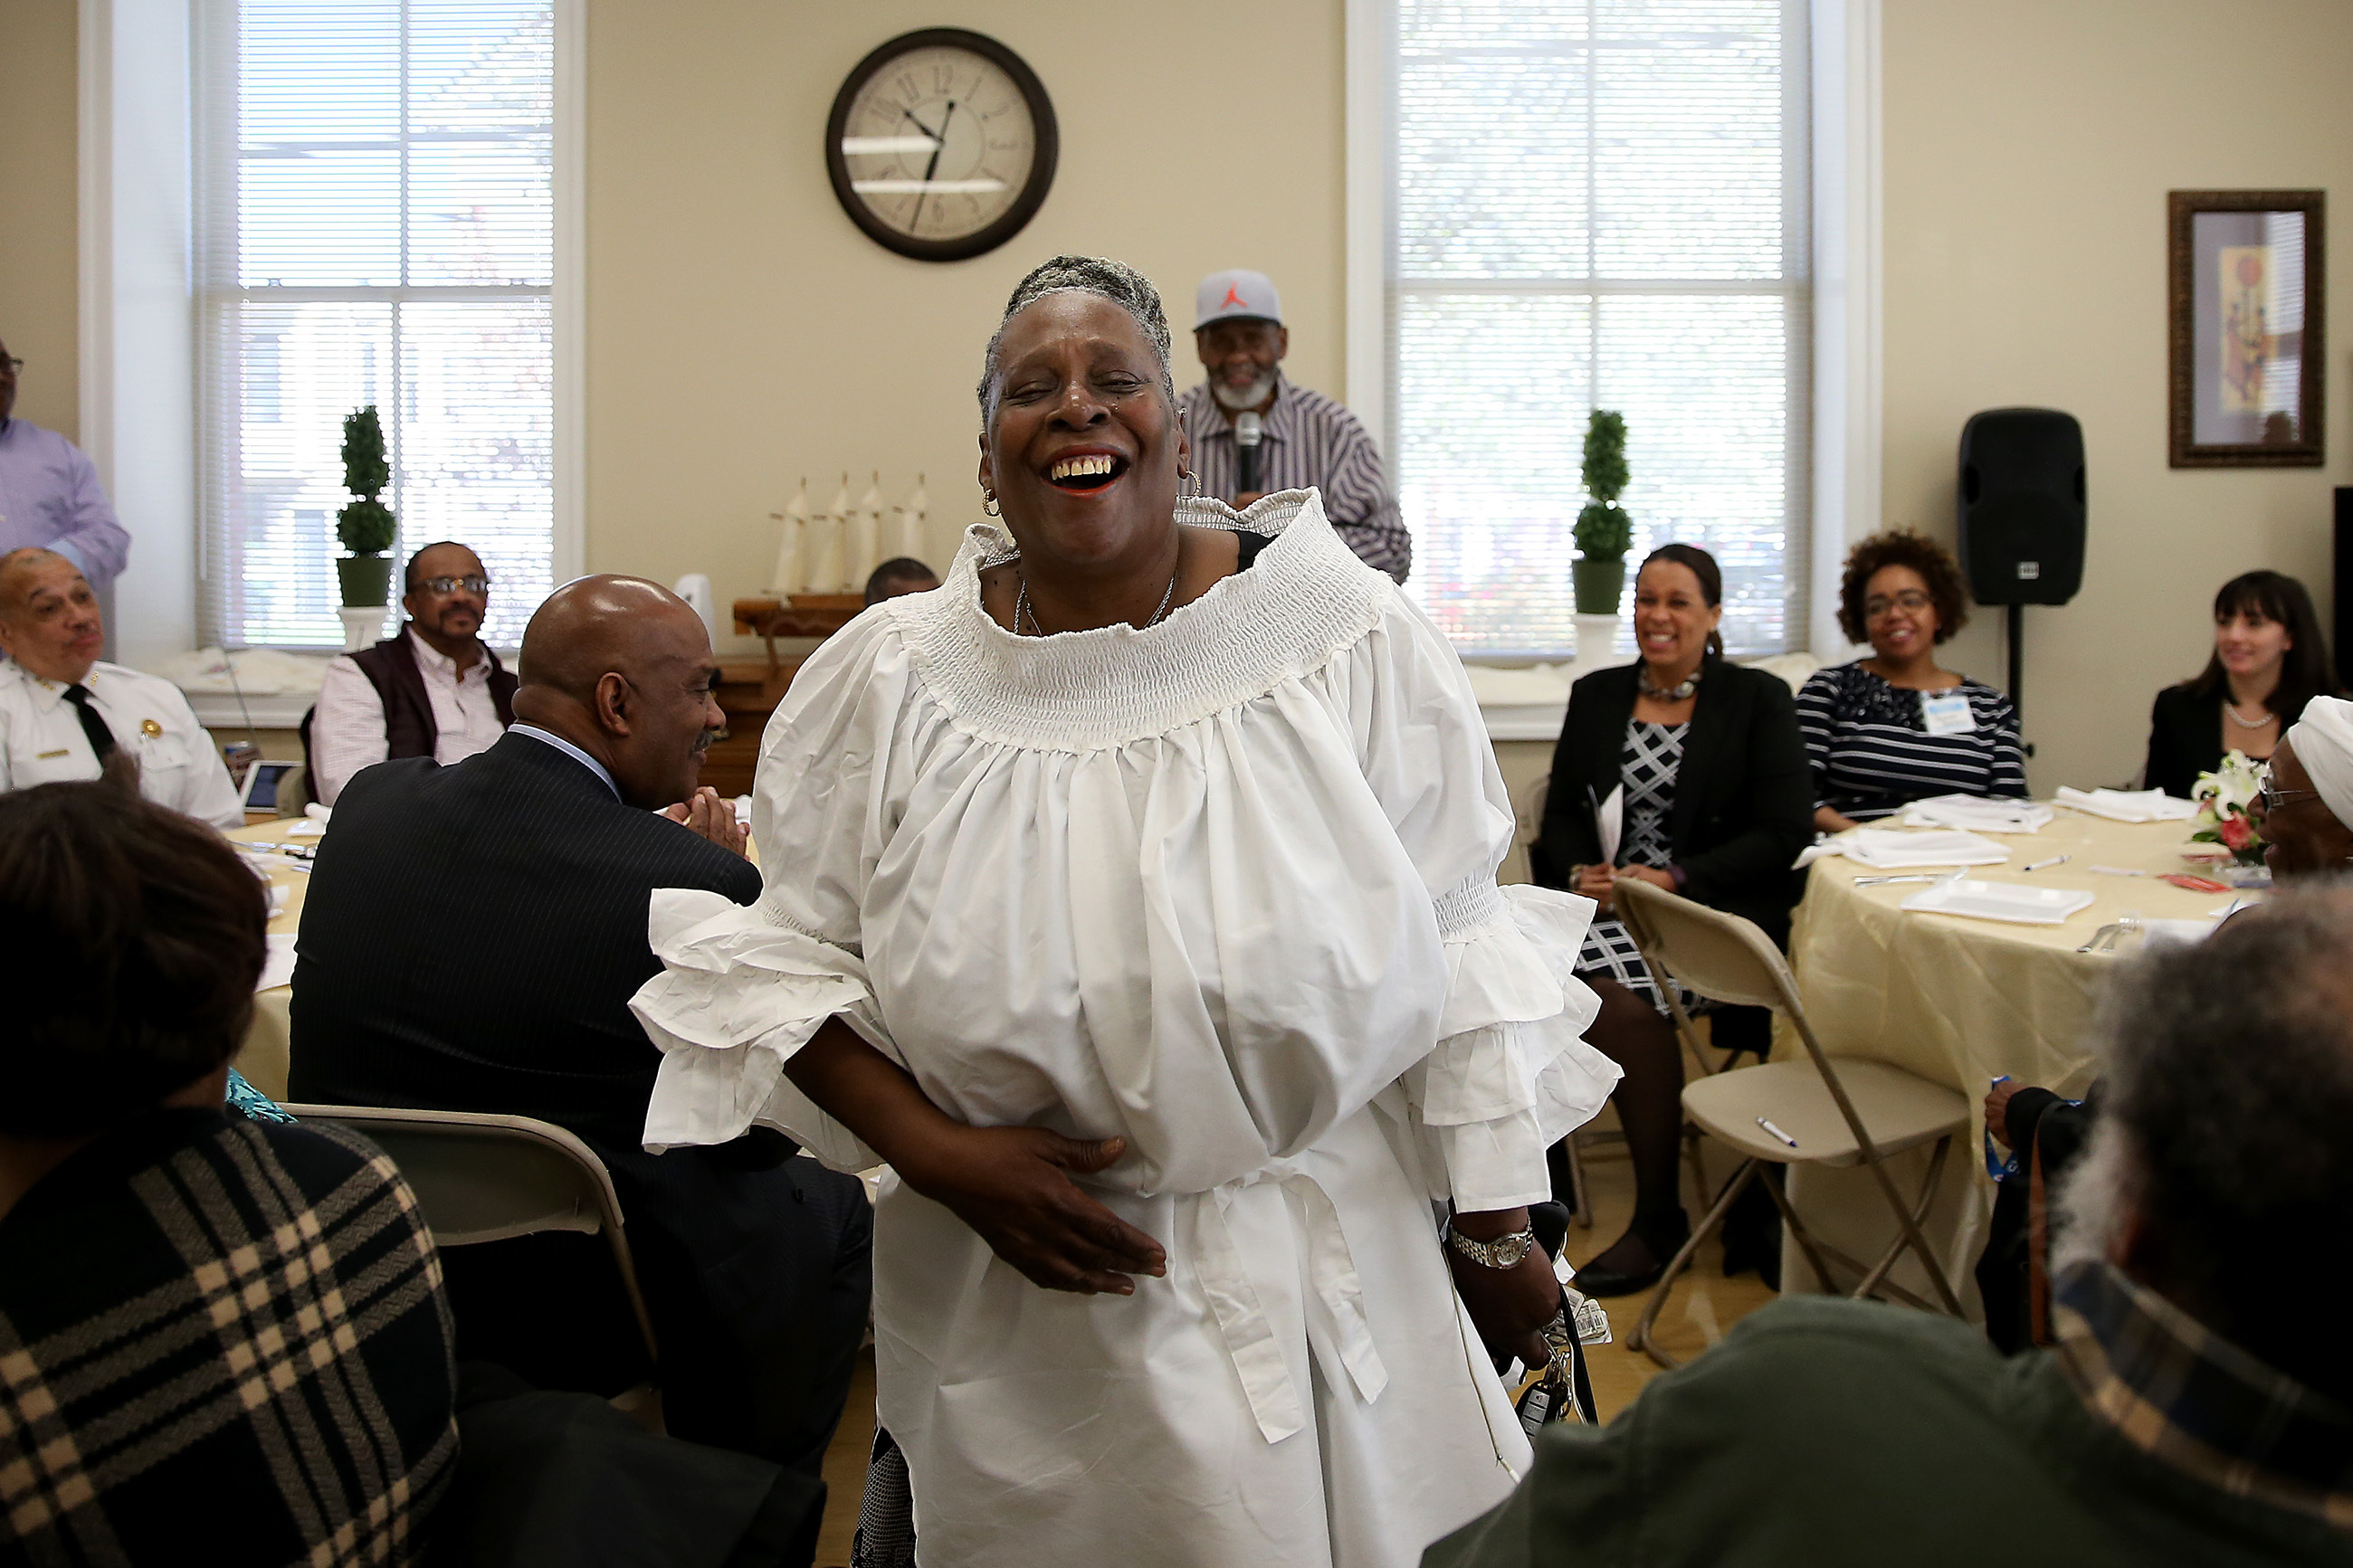 Harriett Ahmad, center, laughs as her husband, Sultan Ahmad, in the center background, compliments her. The AhmadÕs mark the anniversary of their son´s Sultan Jihad Ahmad´s murder 26 years ago with an annual peace breakfast in his memory for families that have lost loved ones to violence in Philadelphia, PA on April 20, 2018.